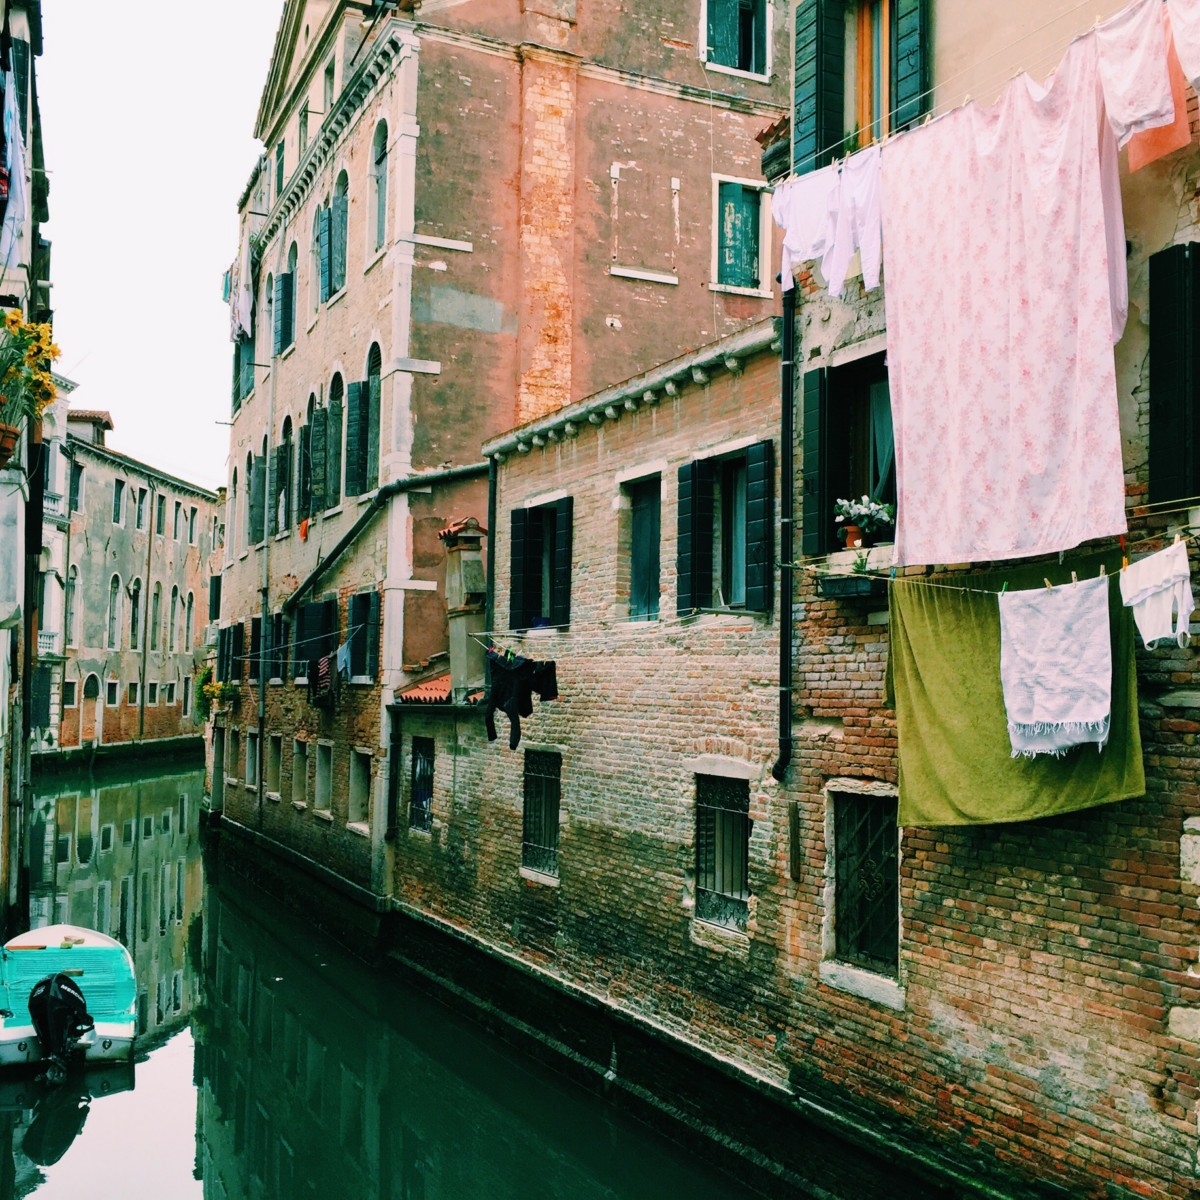 Exploring Cannaregio and the back streets of Venice, Italy with children - copyright: www.globalmousetravels.com